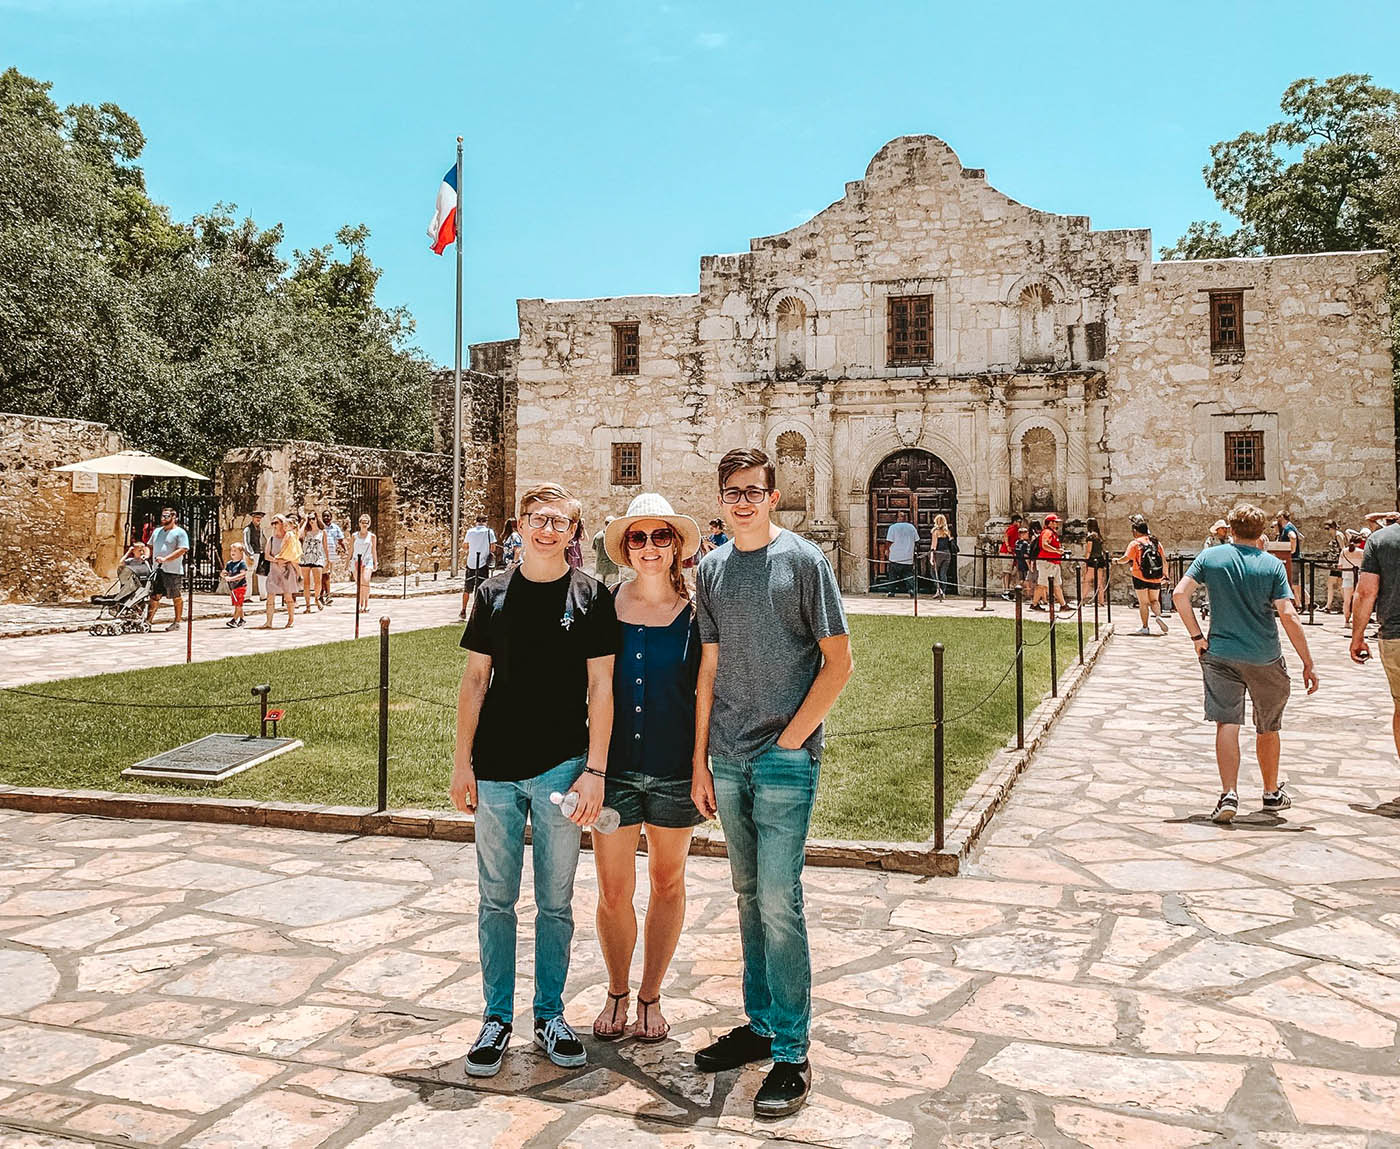 Mom and two teenaged sons in front of the Alamo in San Antonio